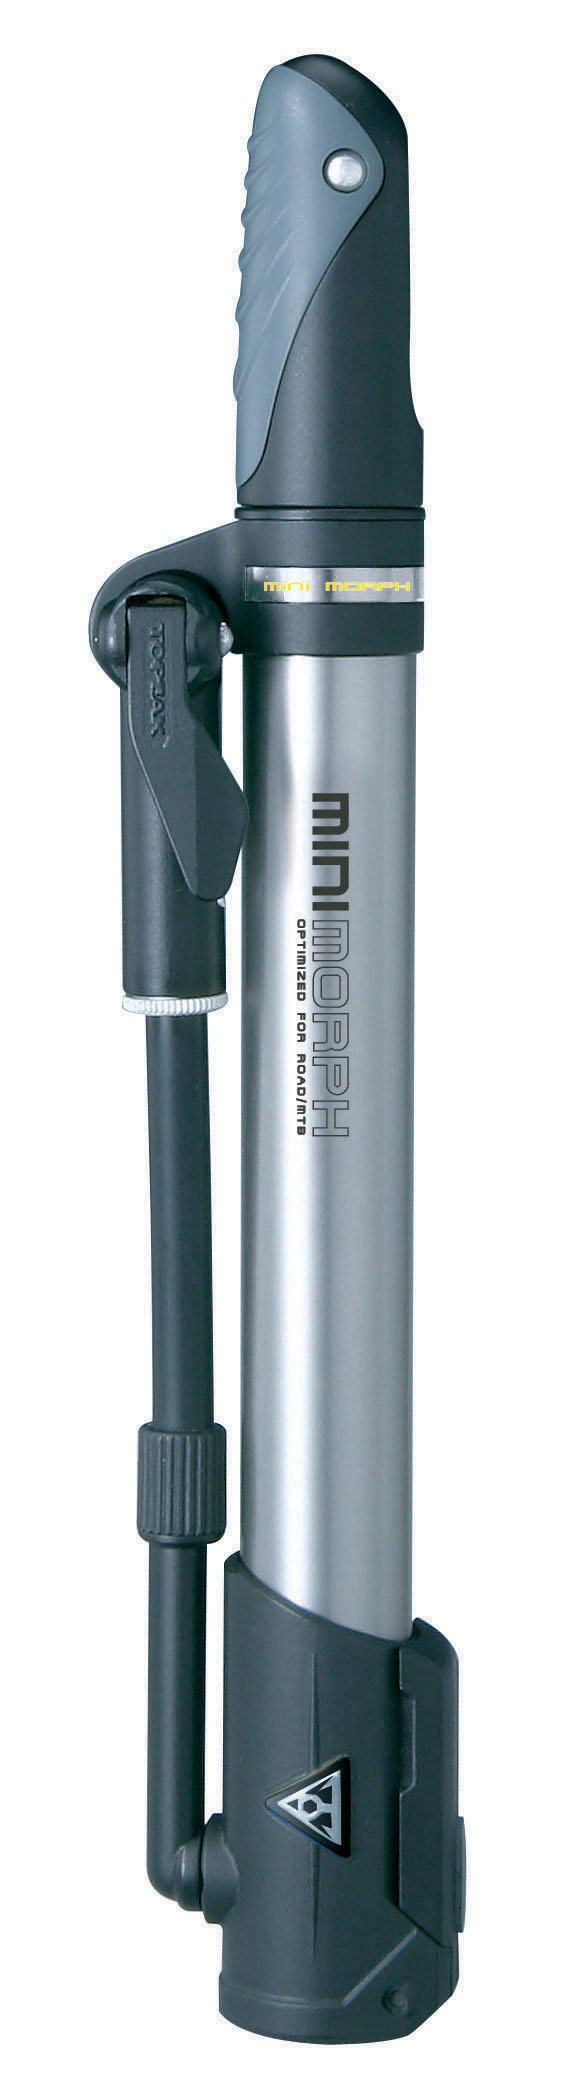 Topeak Mini Morph Bike Pump product image